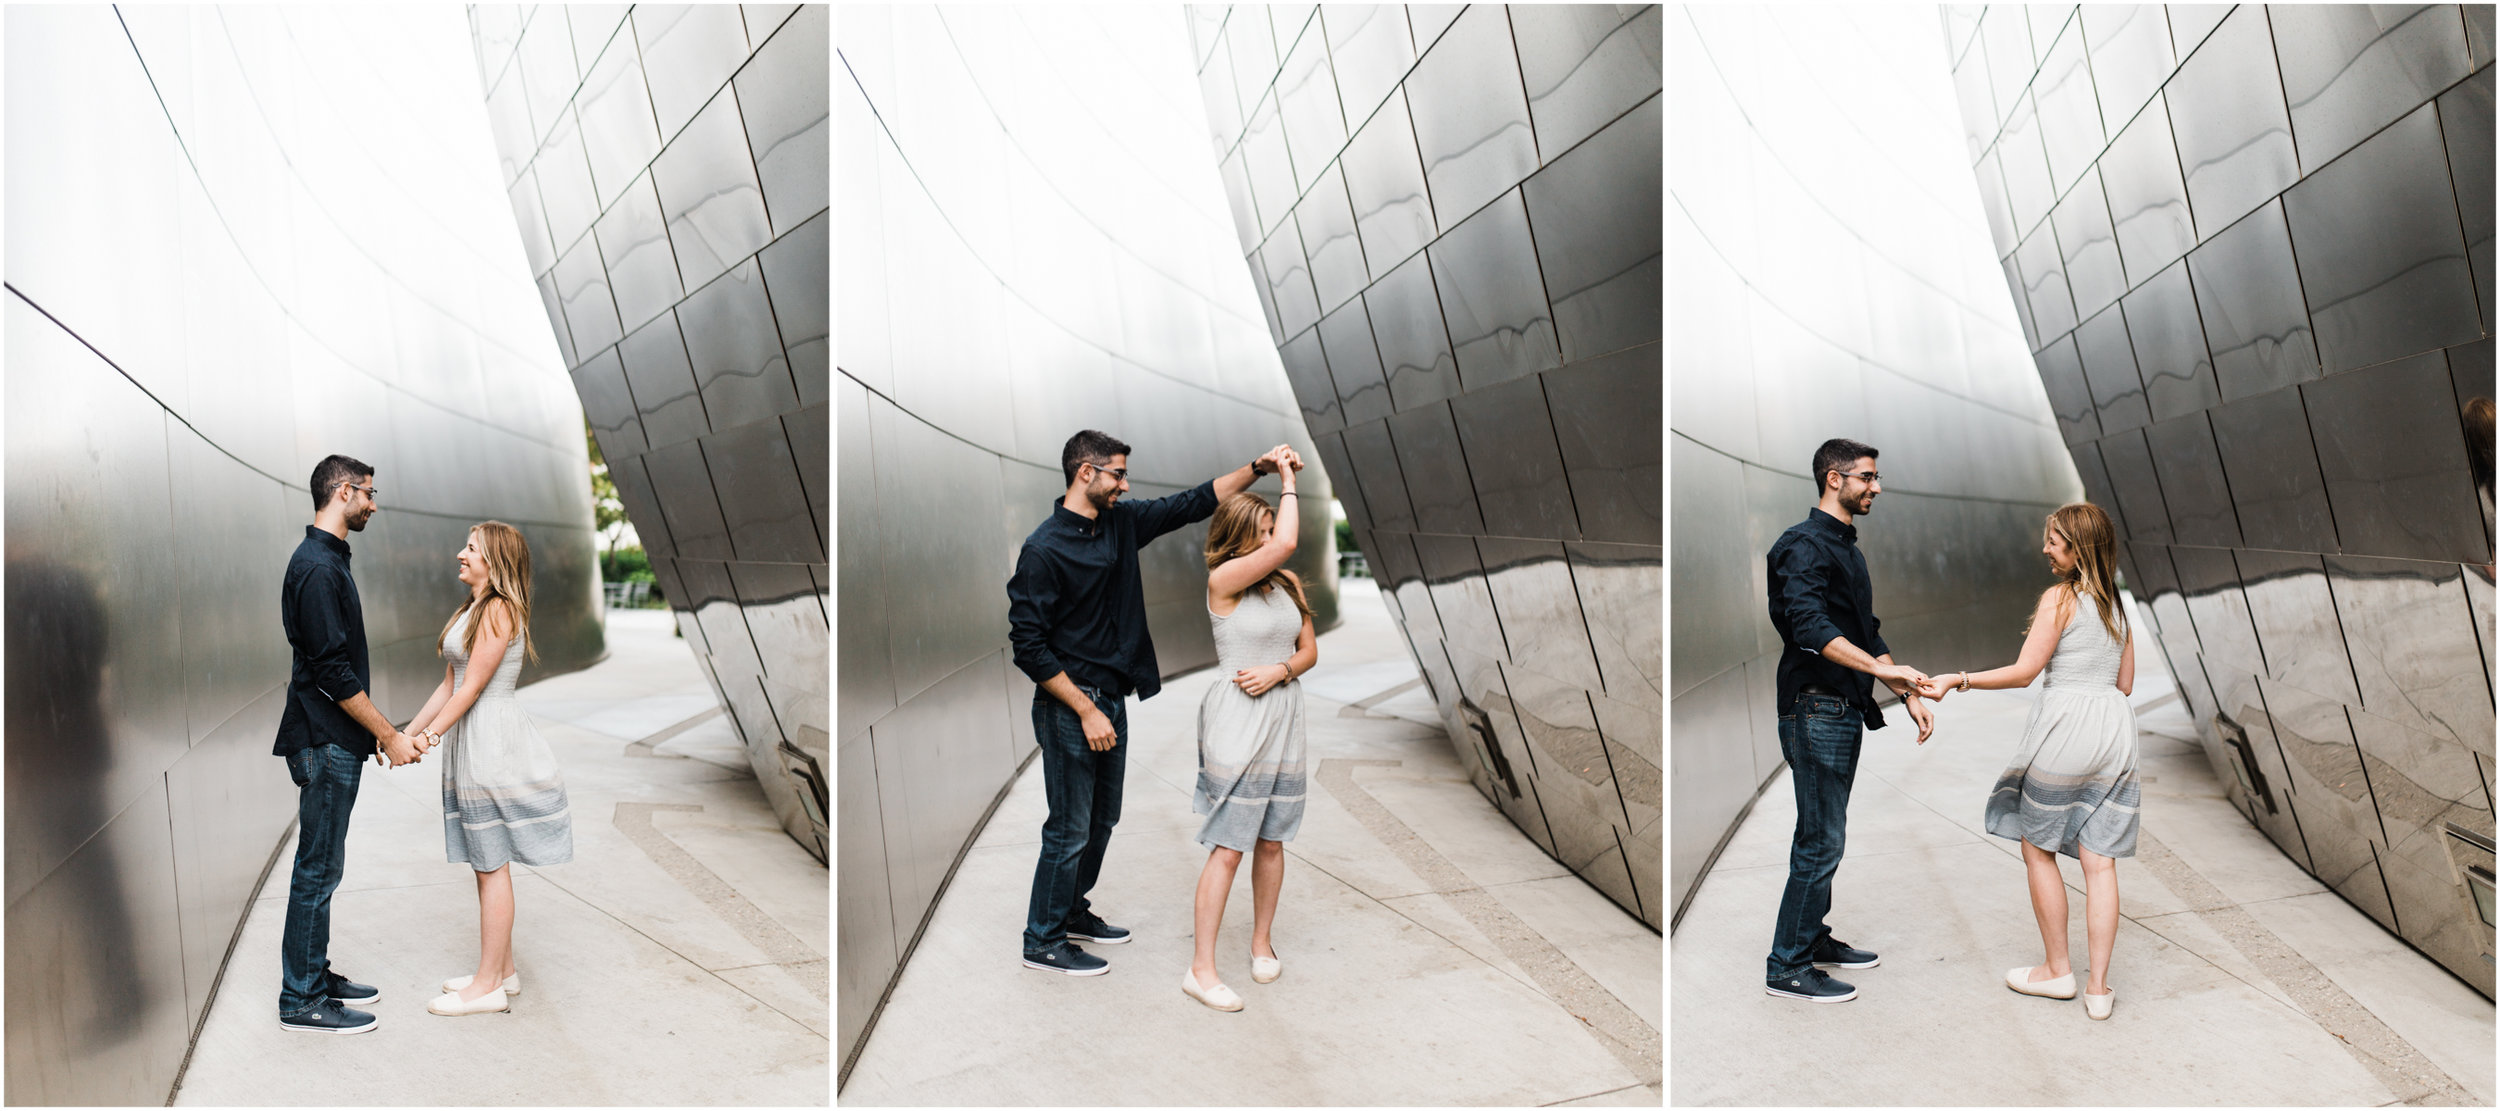 Rula&Abdul-WaltDisneyConcertHall-LosAngeles-Proposal_Collage4.jpg